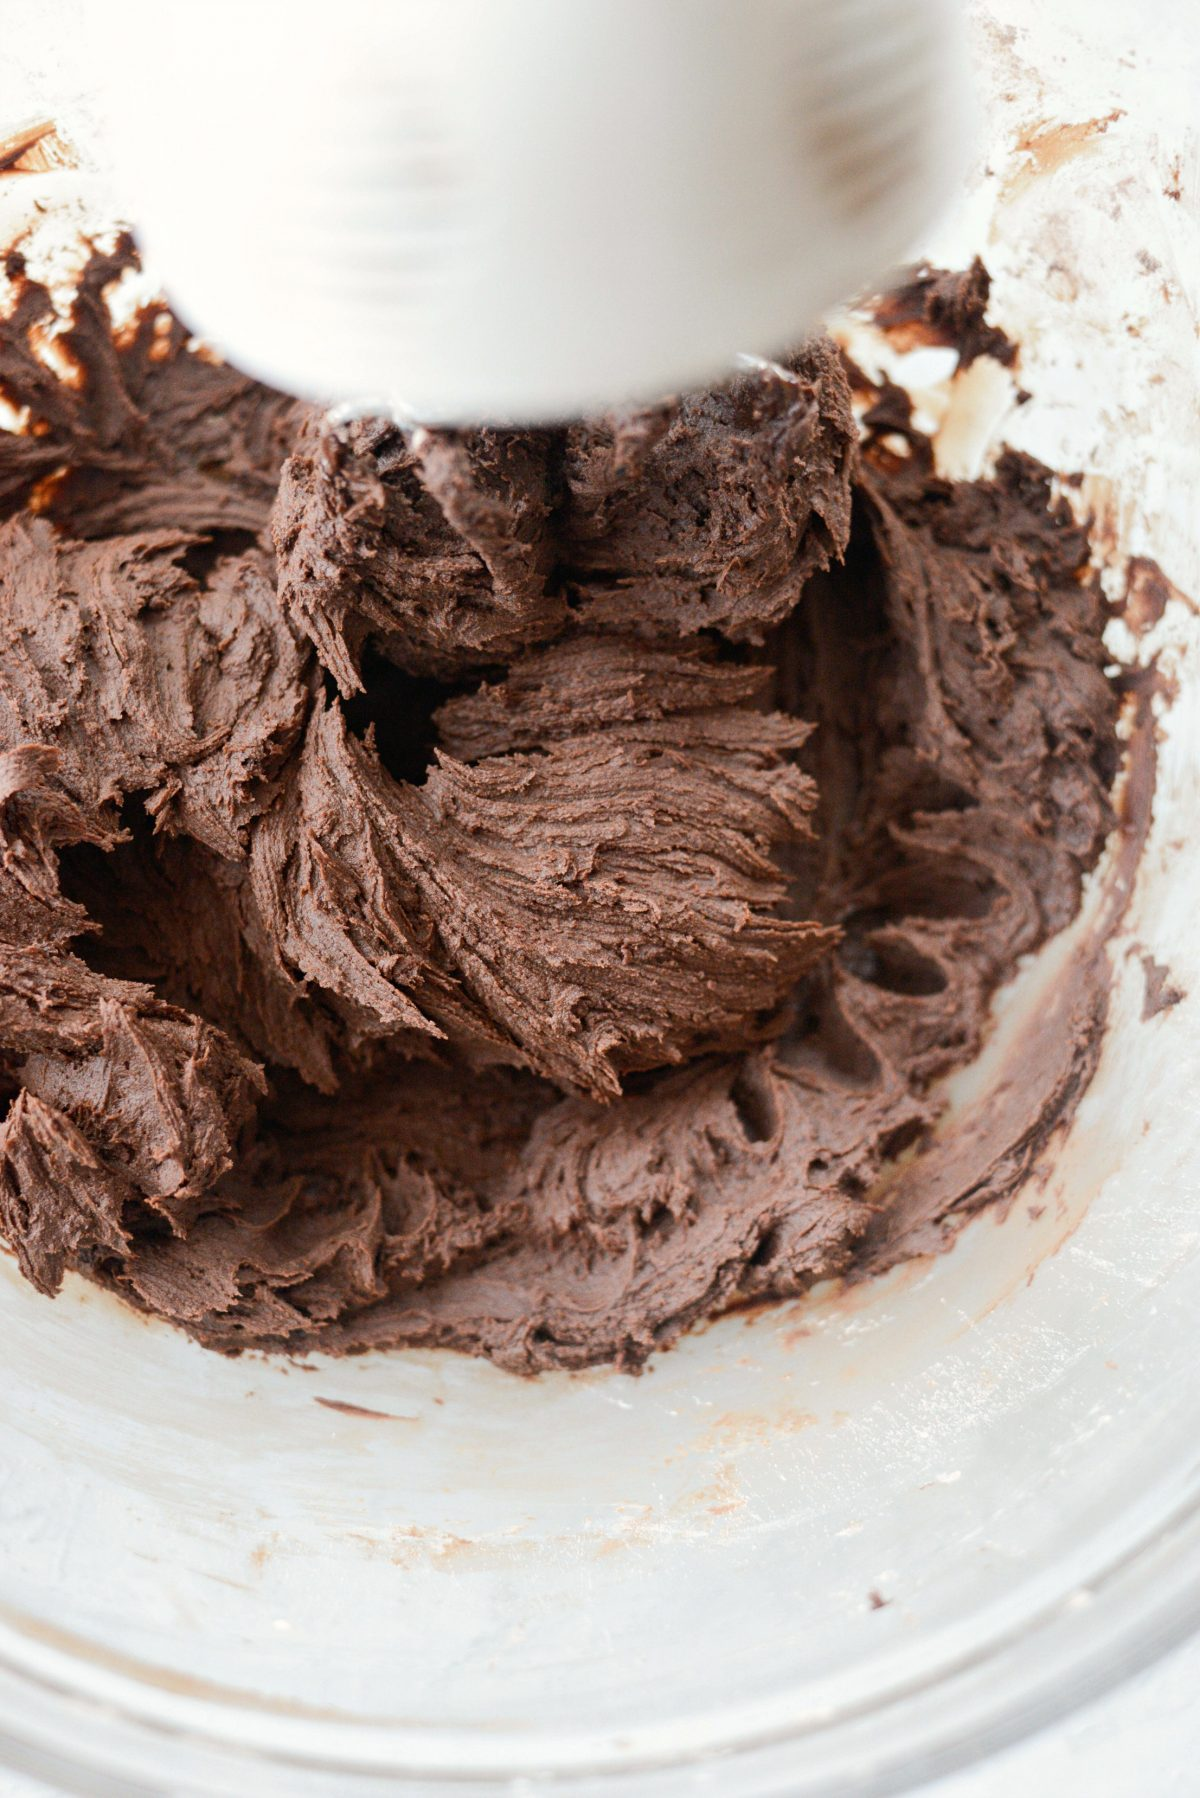 Homemade Chocolate Frosting l SimplyScratch.com #homemade #fromscratch #chocolate #frosting #buttercream